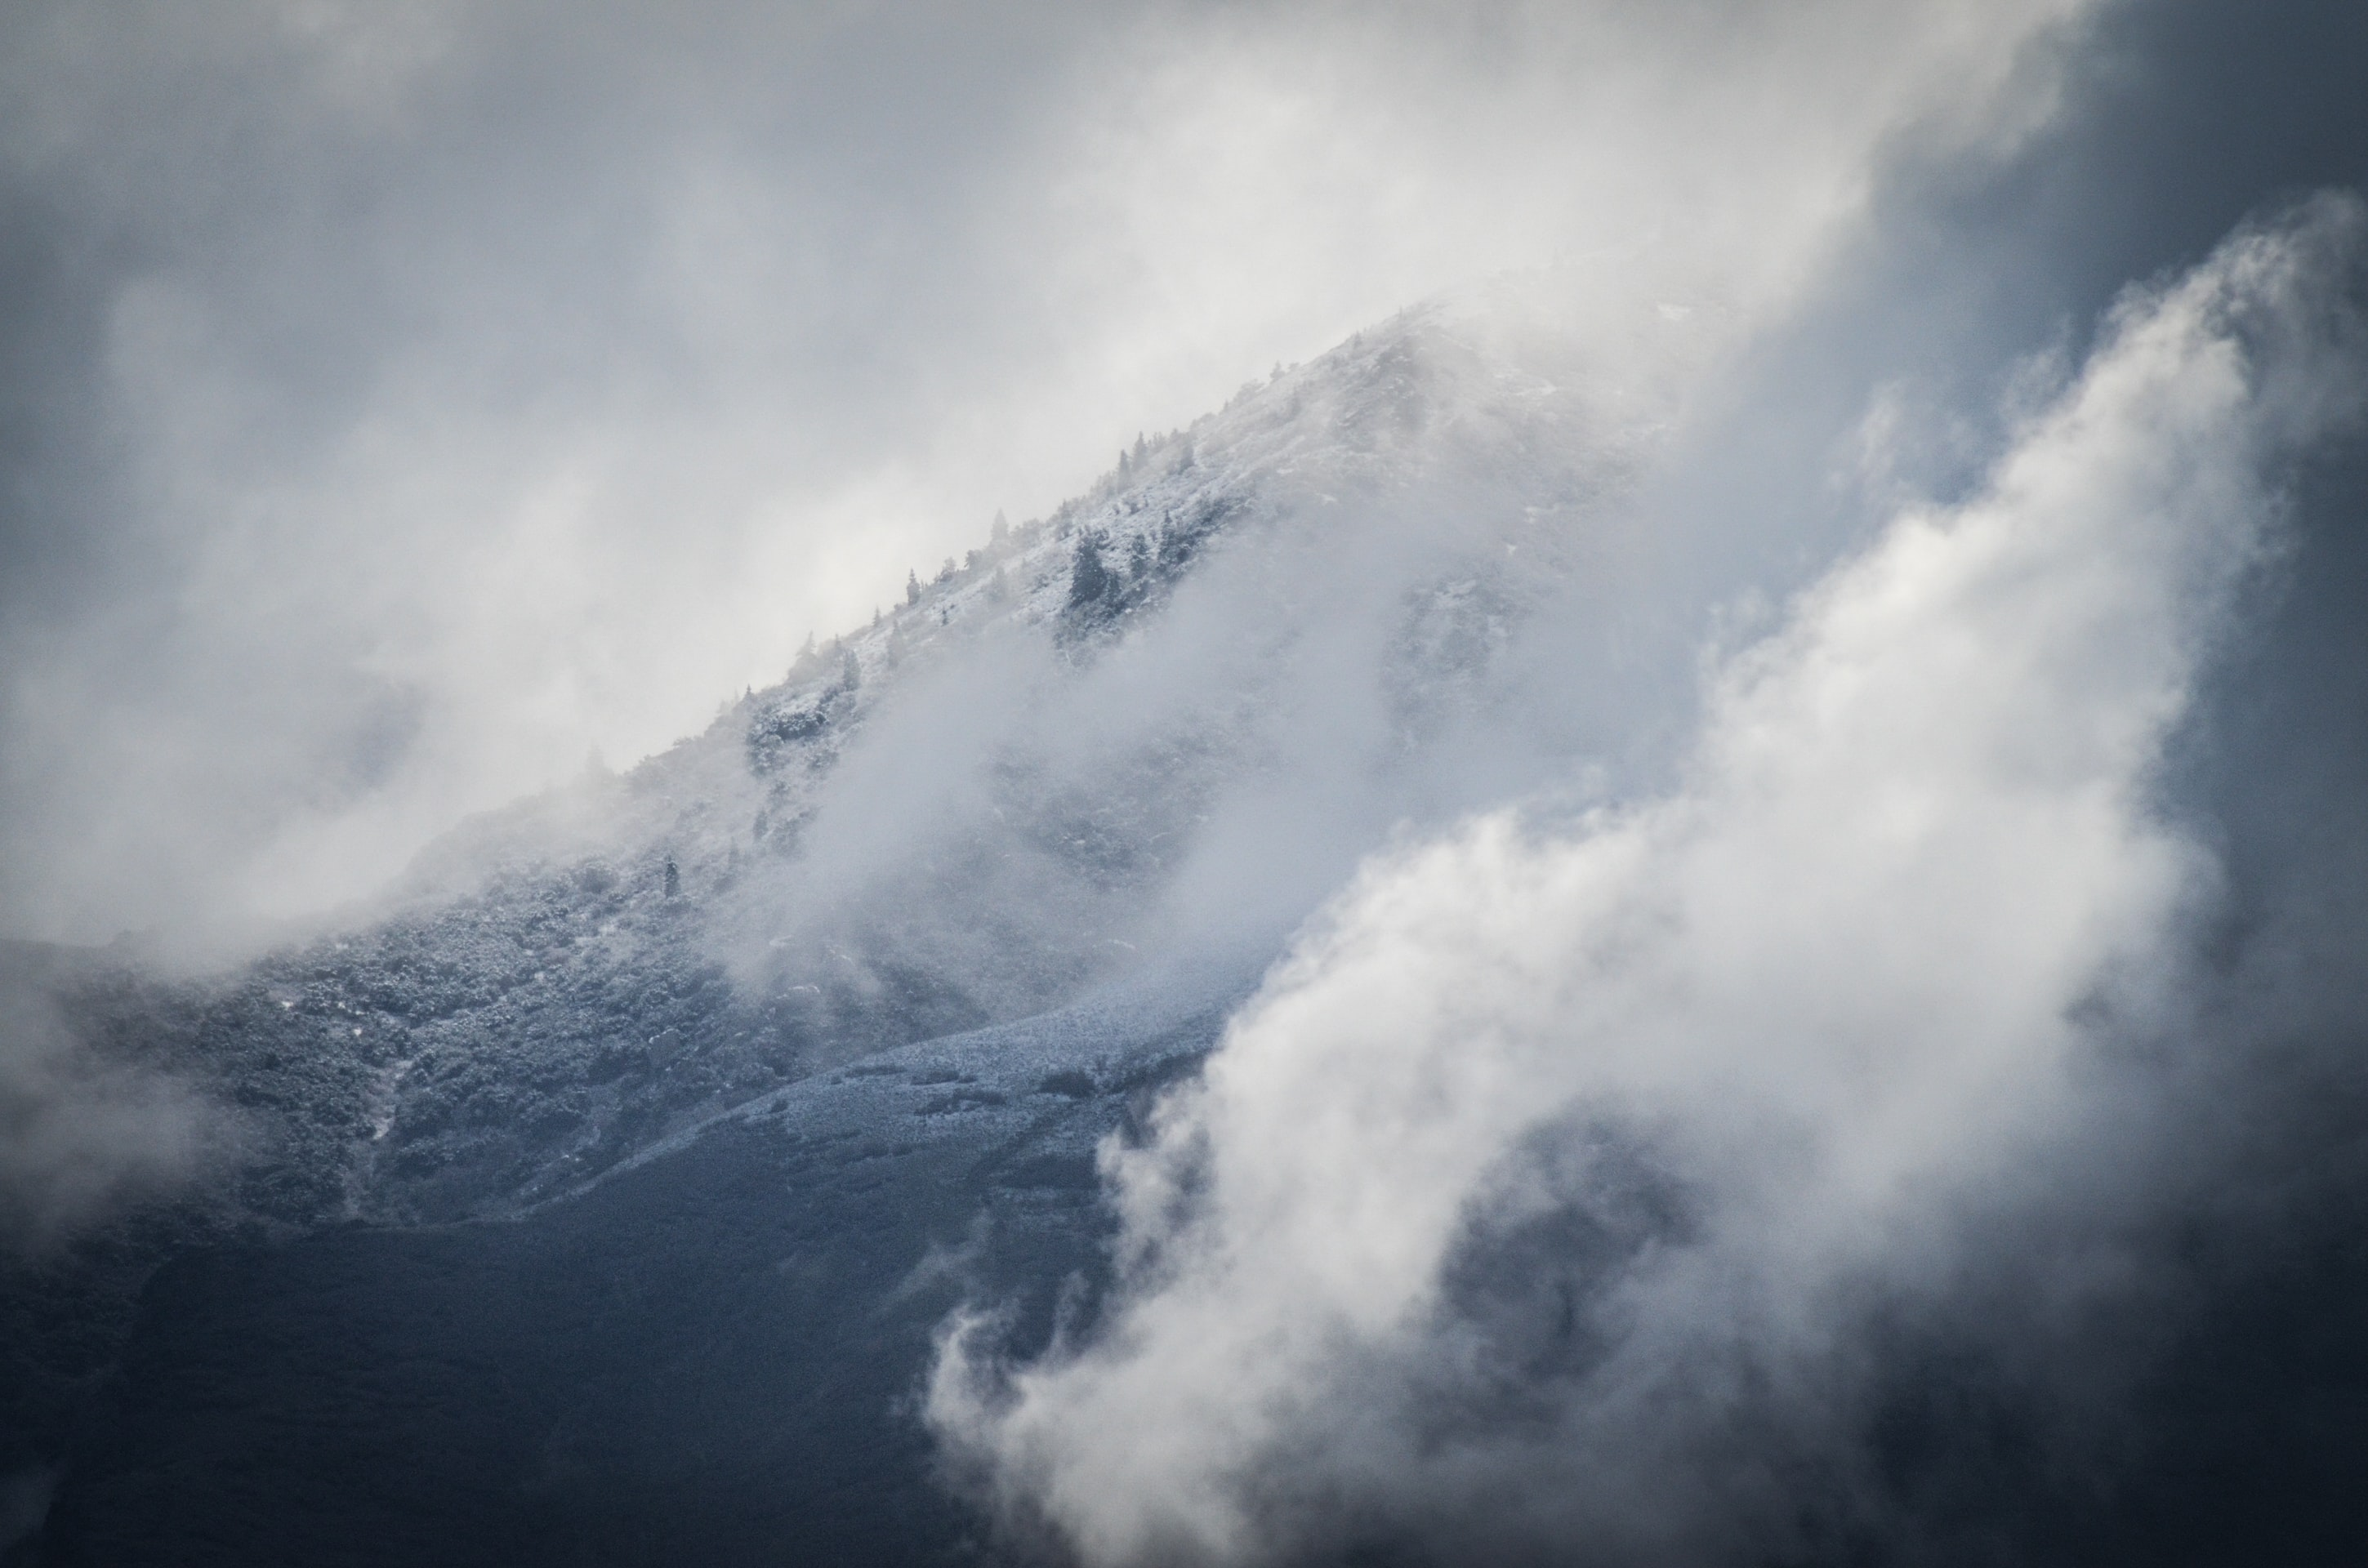 Fog rolls in over snowy mountains during winter in Lone Peak Parkway